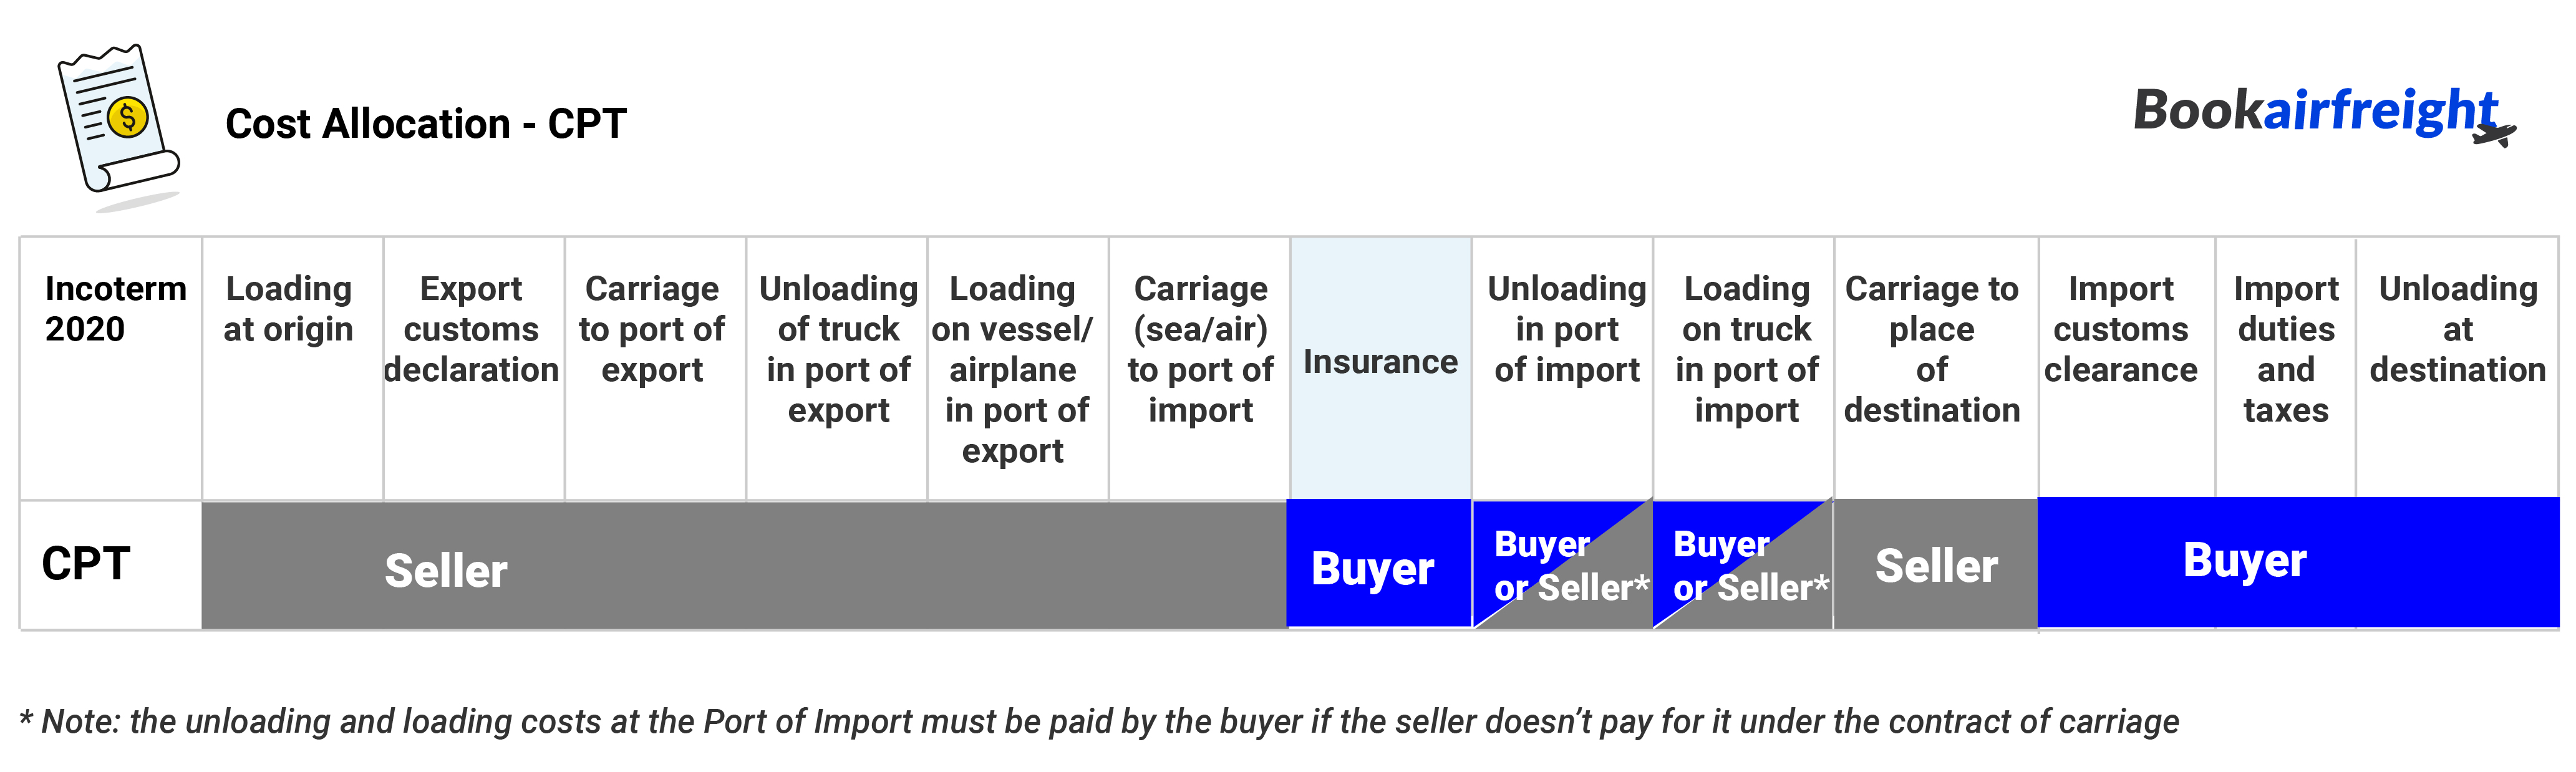 Cost allocation - who should pay what under CPT: